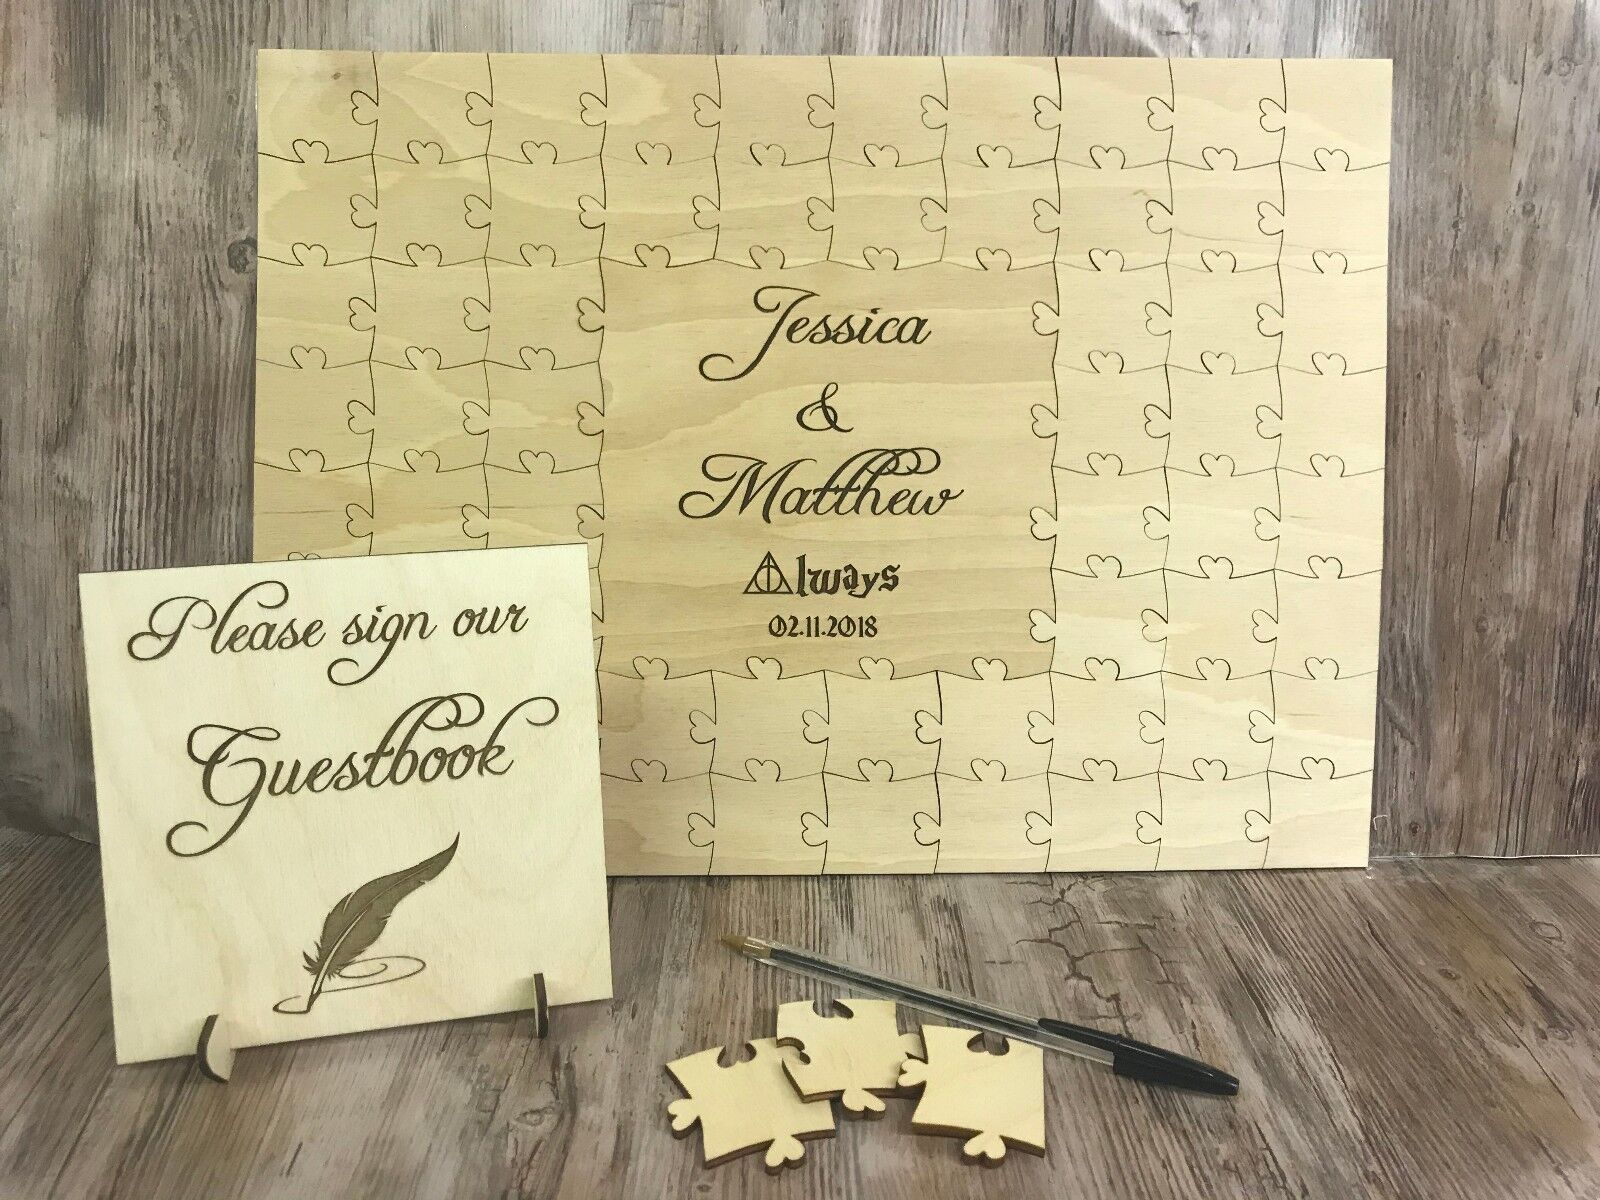 Personalised Harry Potter jigsaw puzzle keepsake wedding gift guest book